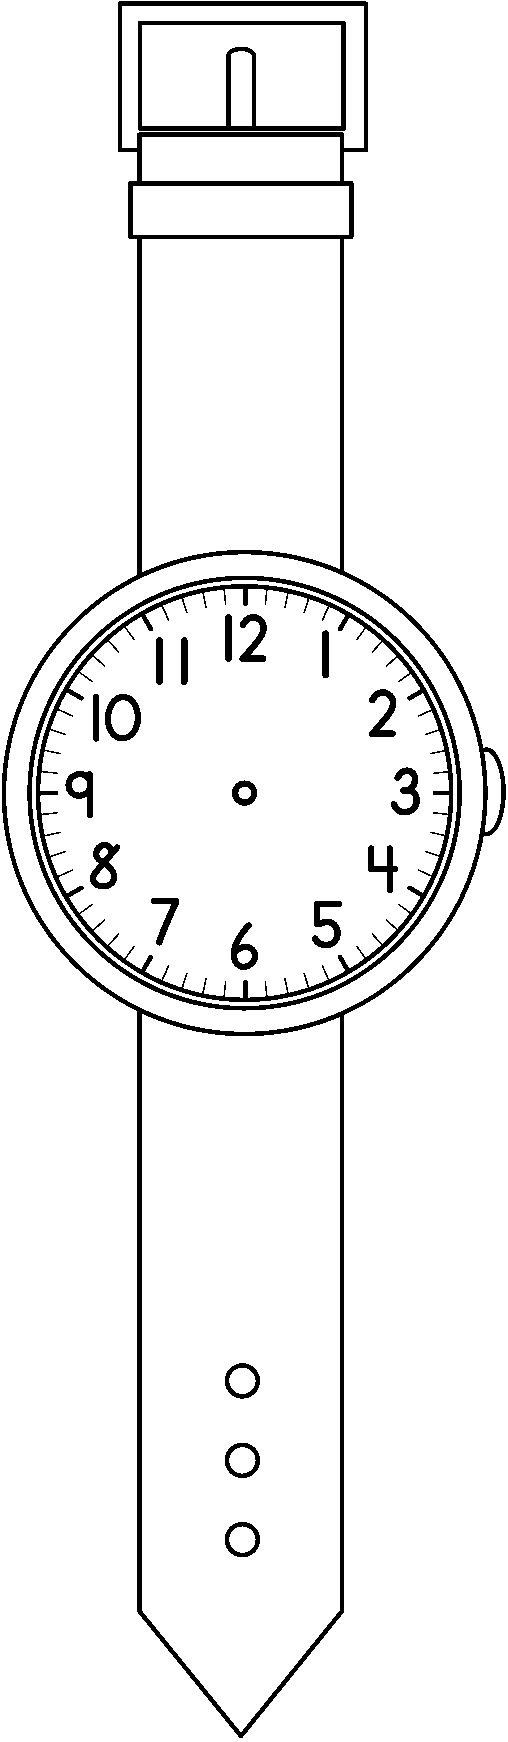 CLOCK_WATCH_BW.bmp (508×1742)